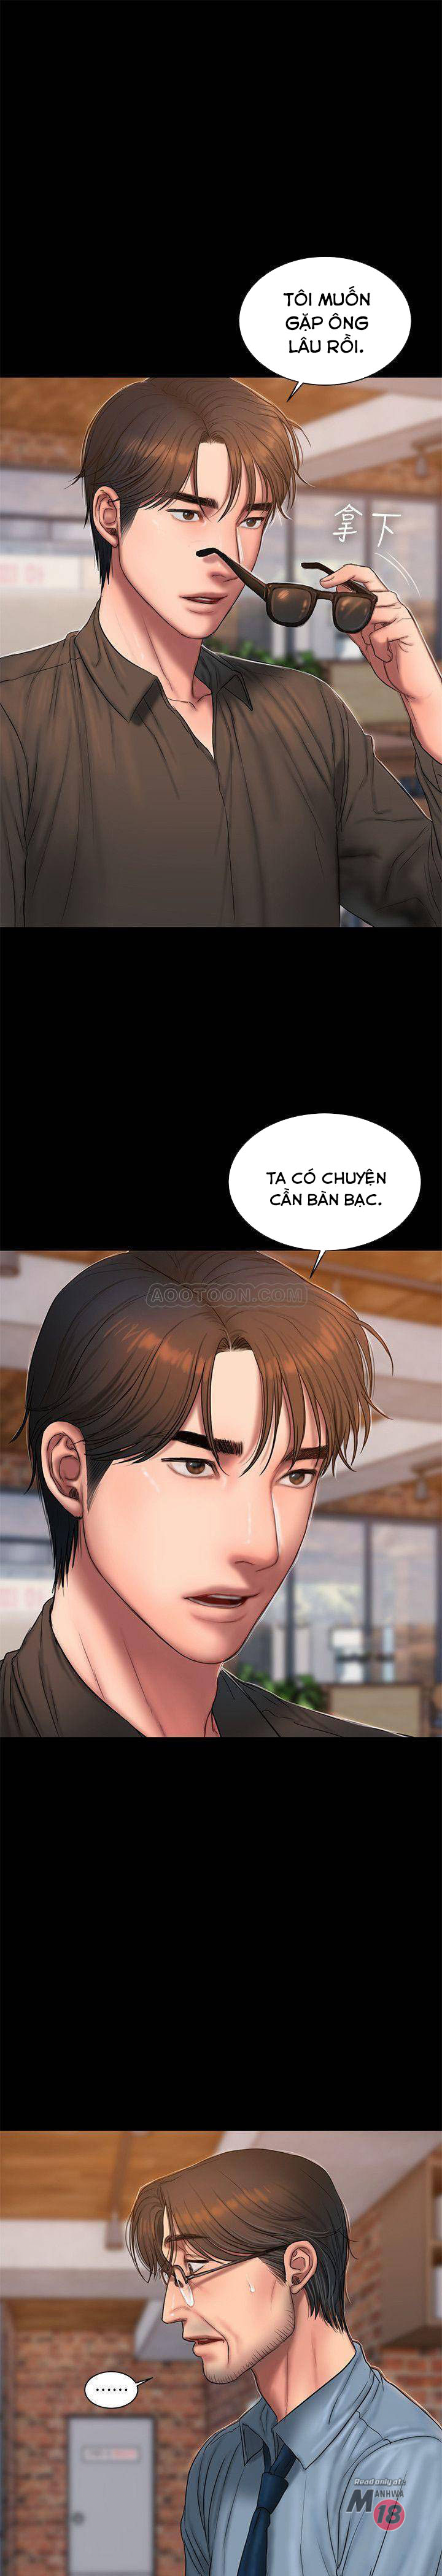 Image 29 copy in Chạy Trốn -Chapter 55